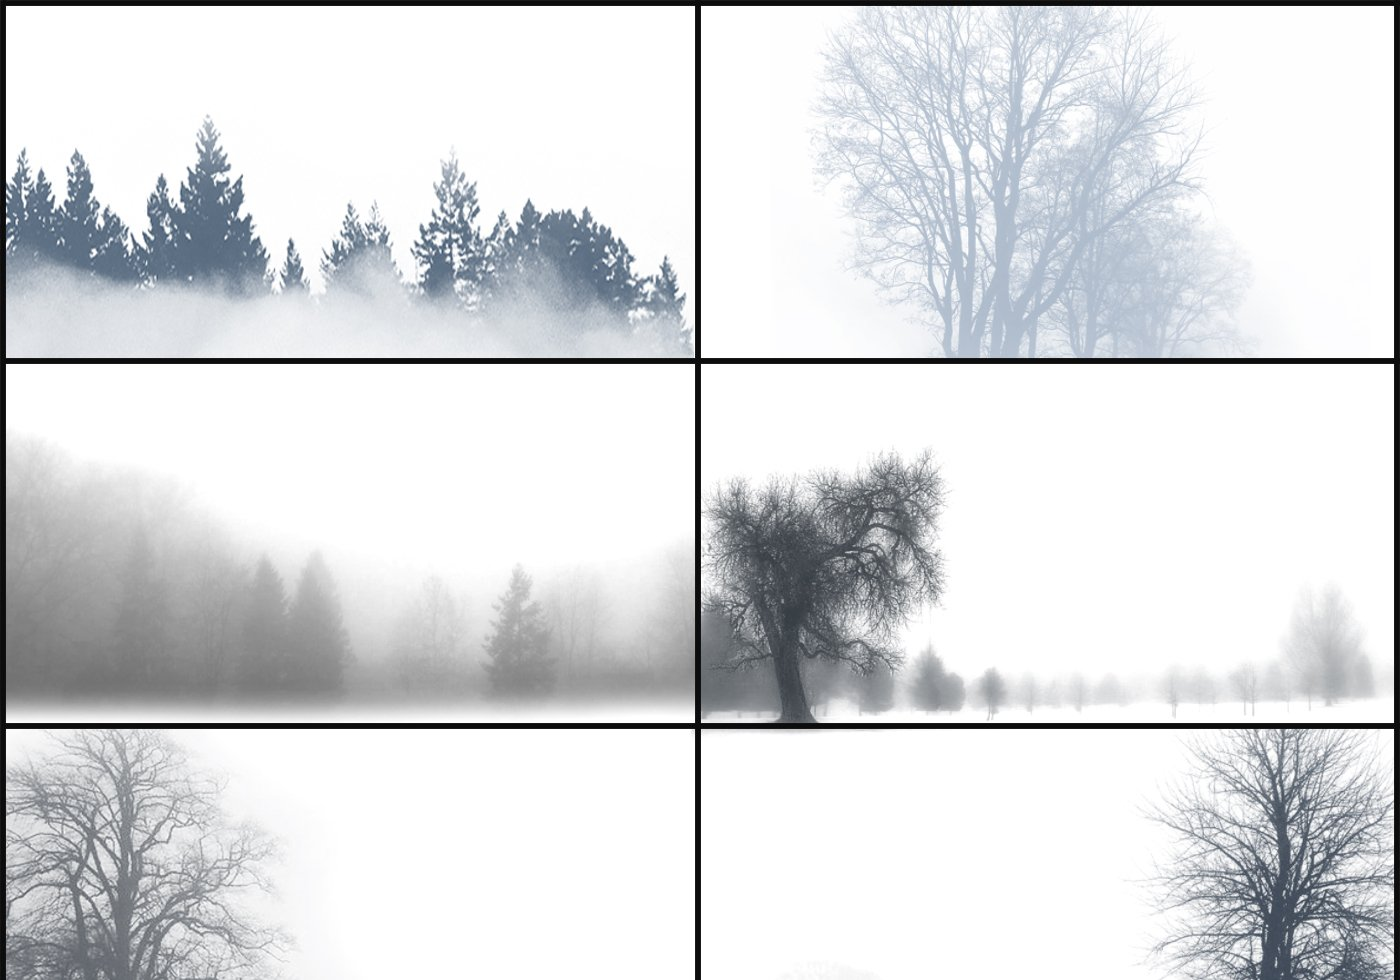 Beyond-the-mist-photoshop-brushes